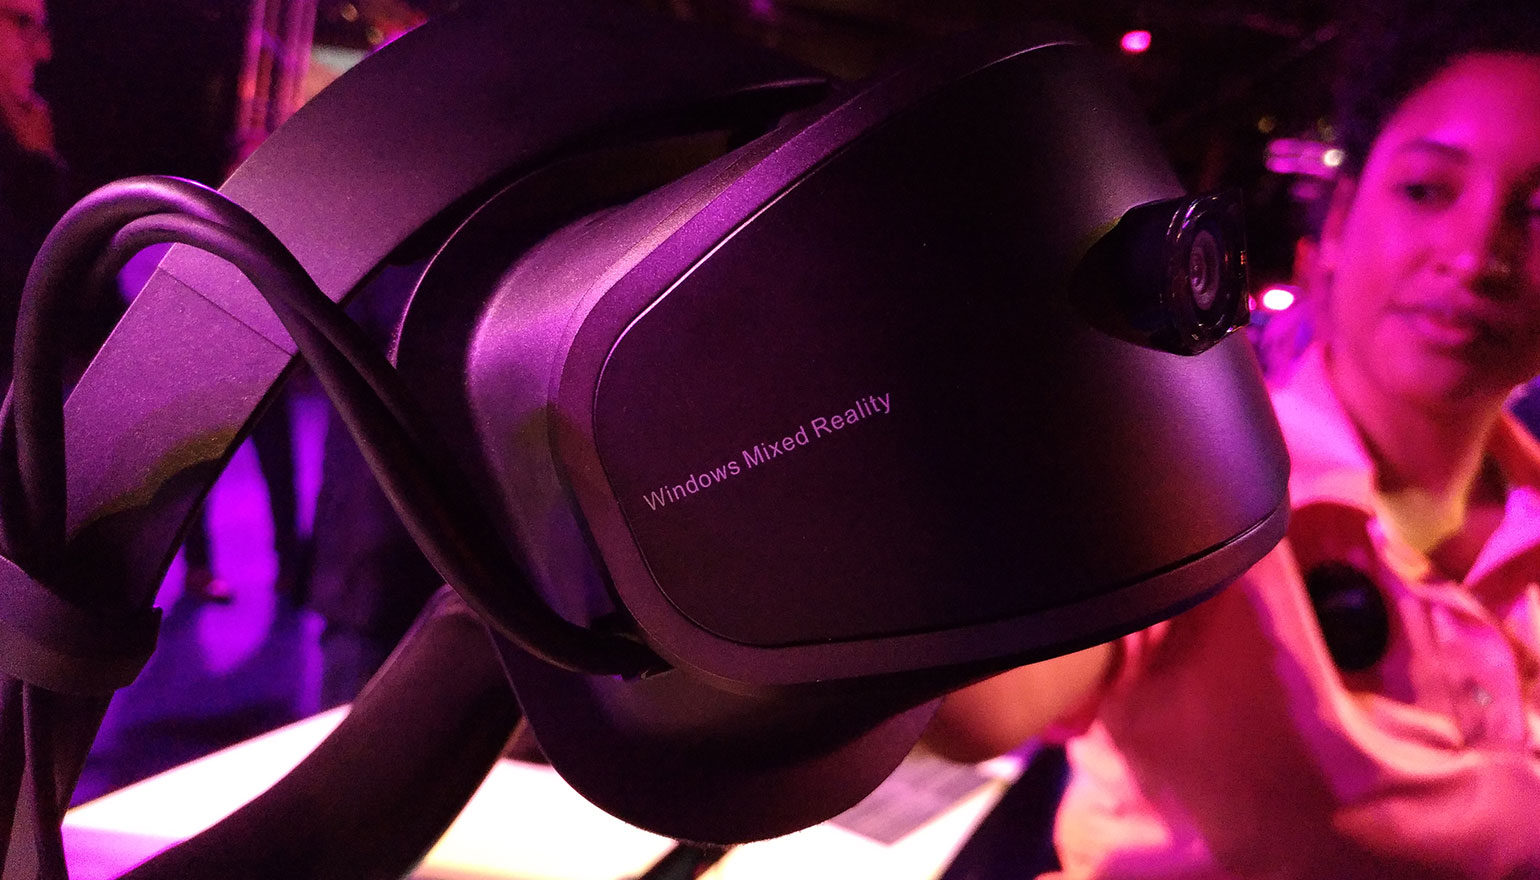 Hands-on met de Lenovo Explorer, de Windows Mixed Reality-headset